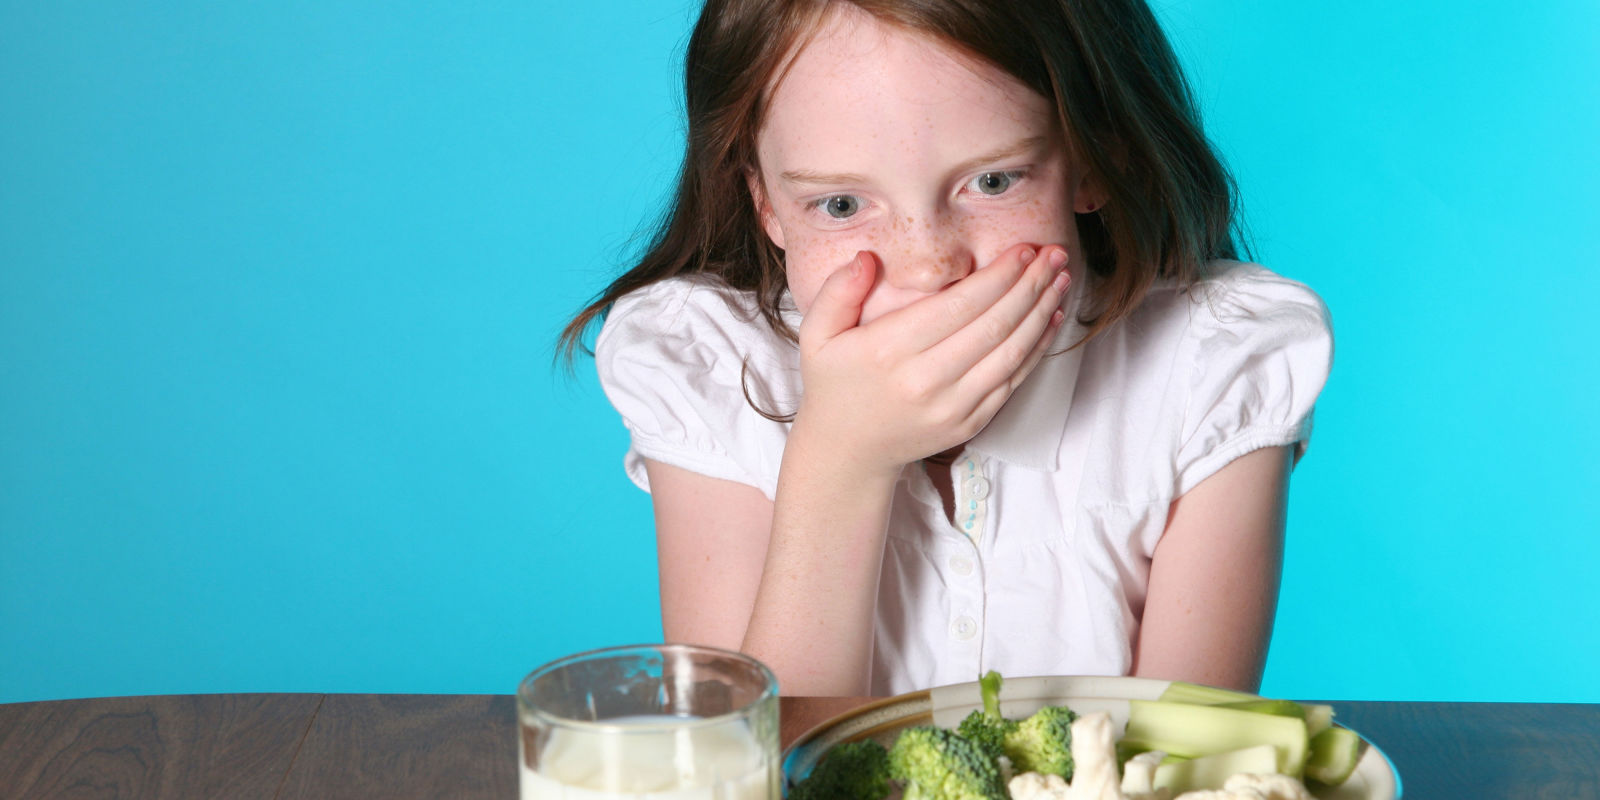 what to give child with fever and vomiting